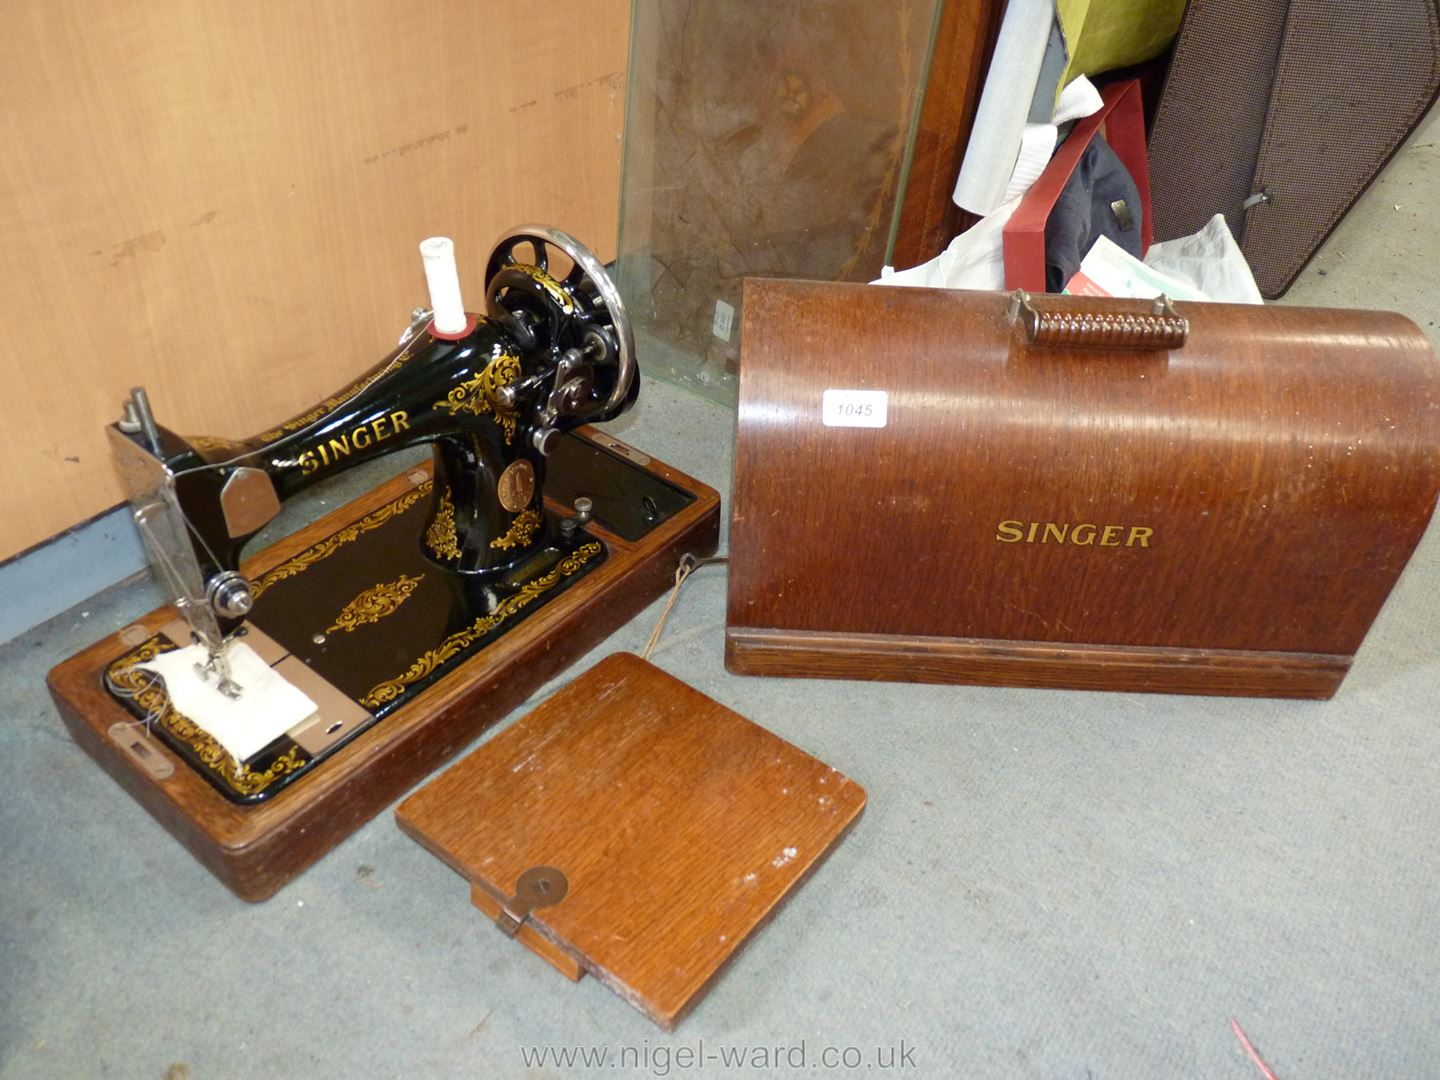 A Singer sewing machine in wooden case with key - Image 2 of 2